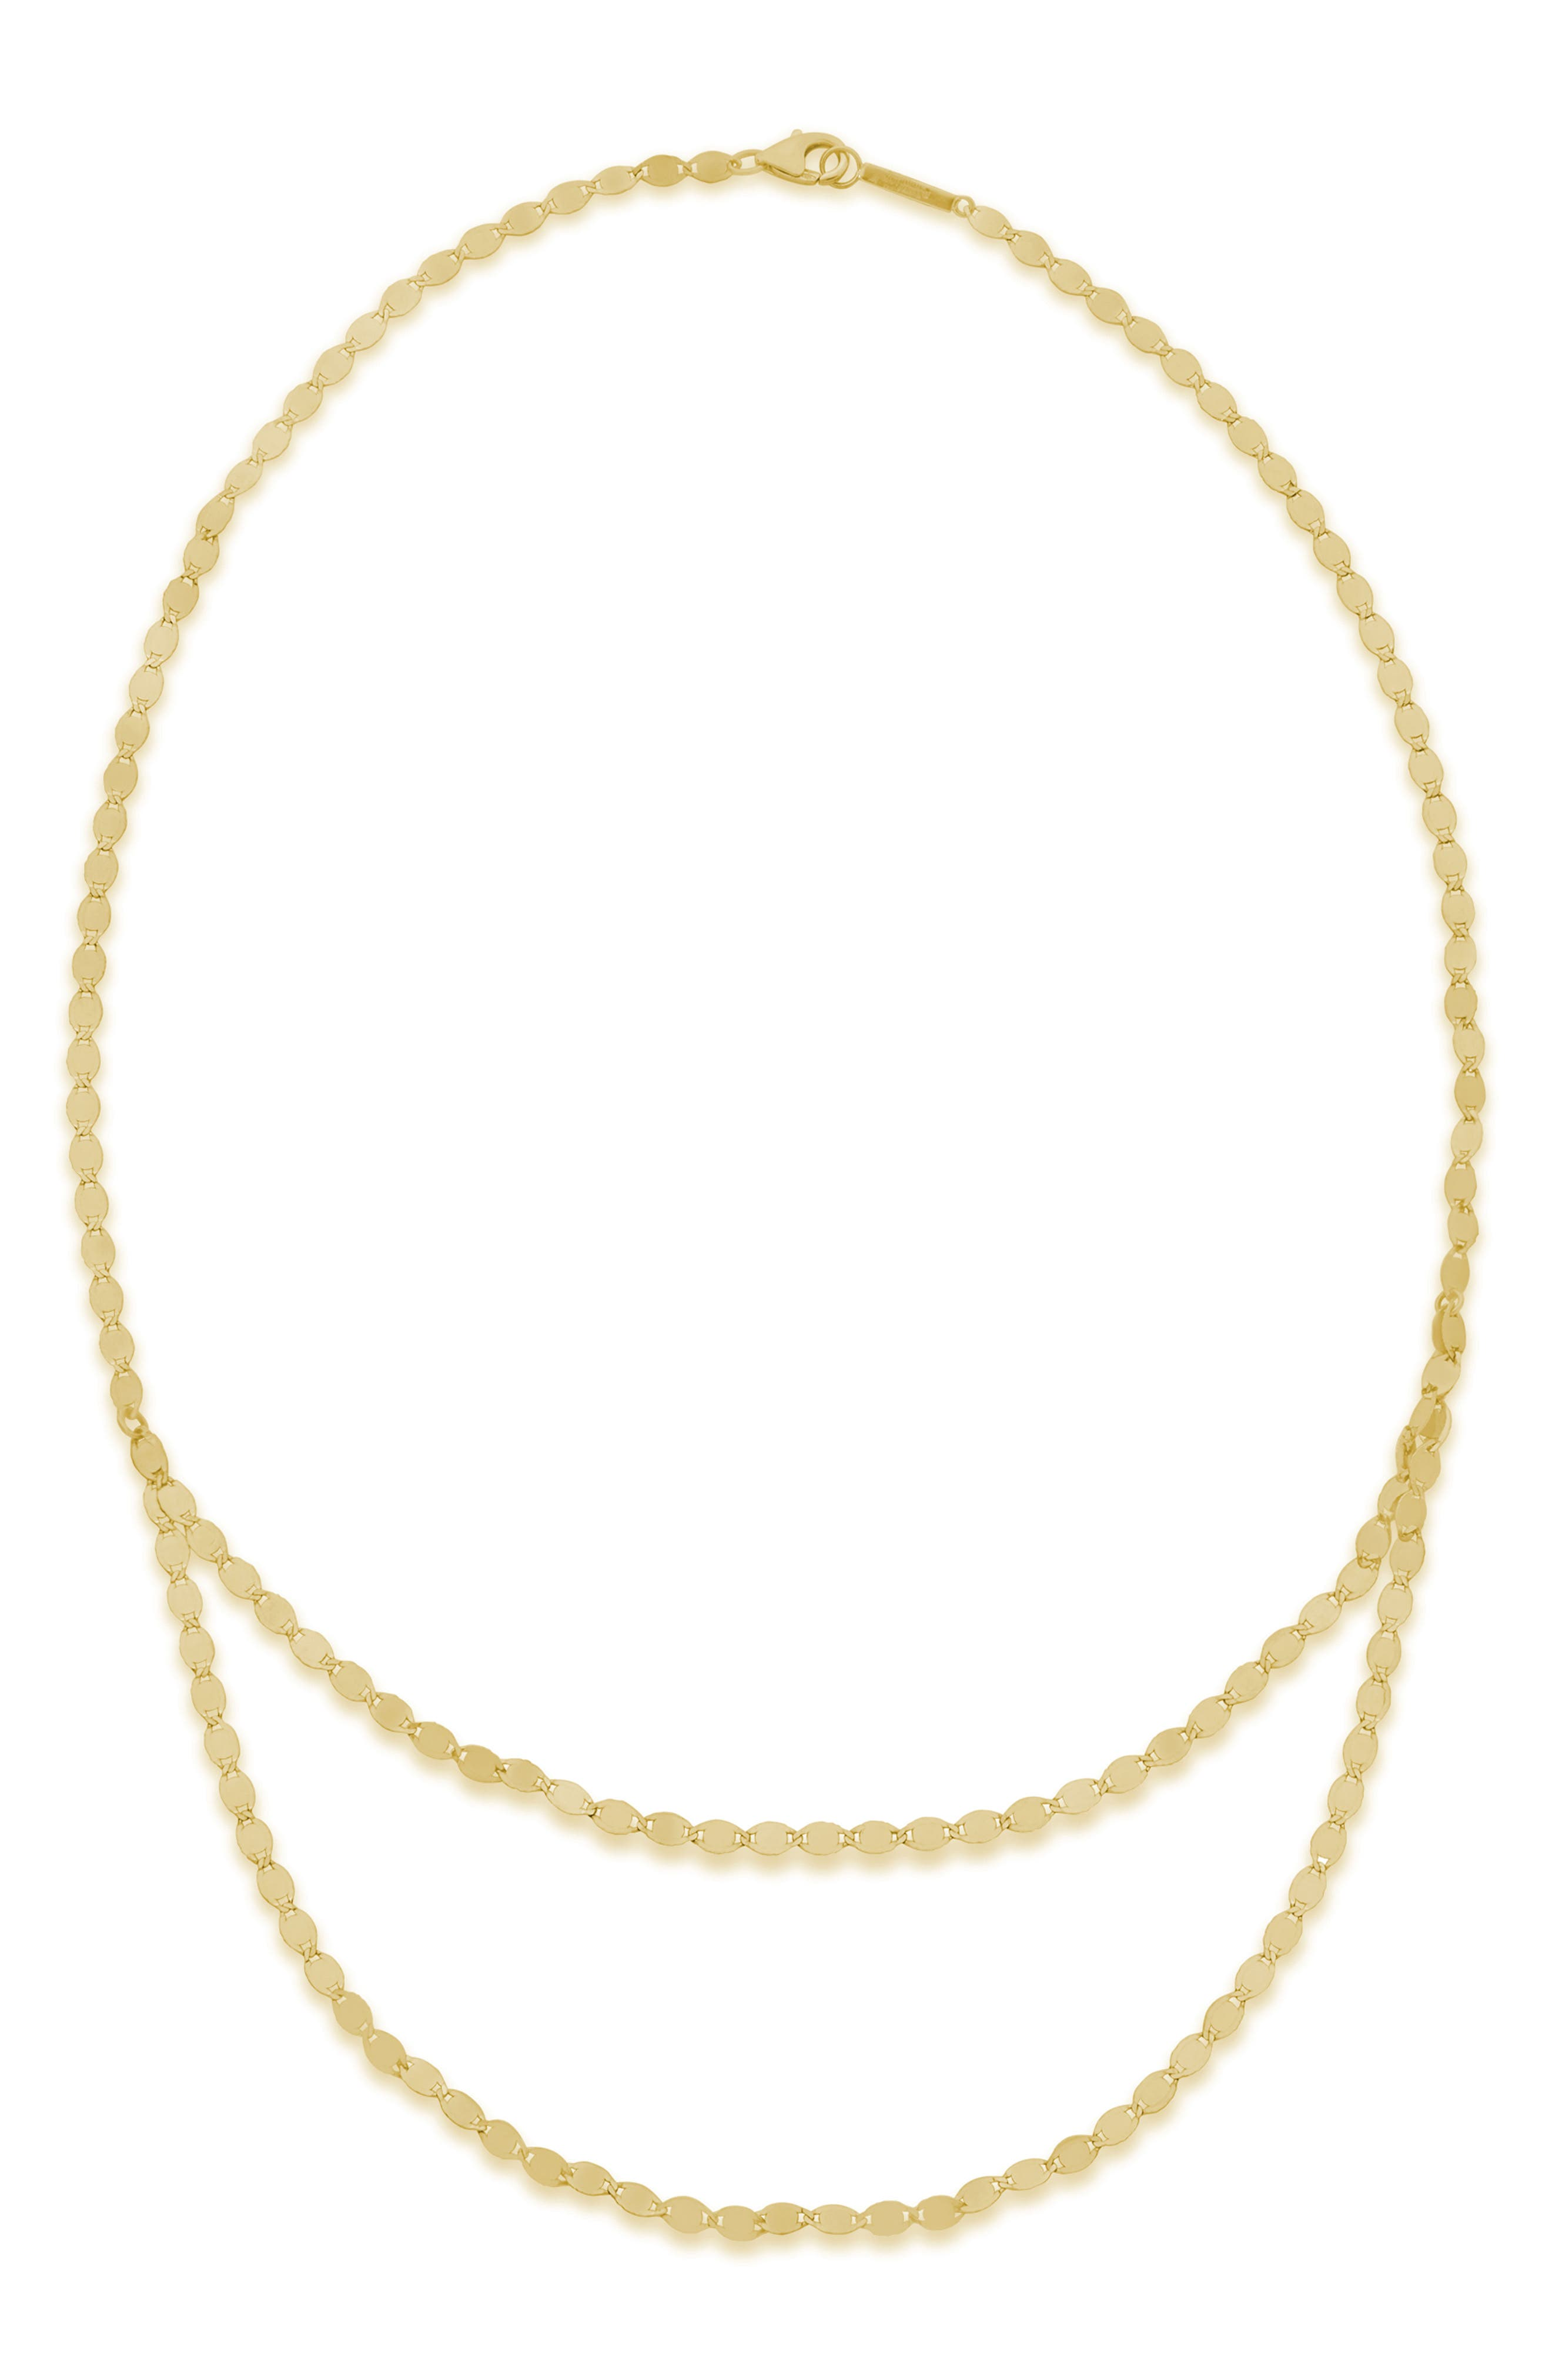 Chain Double Layer Necklace,                         Main,                         color, YELLOW GOLD